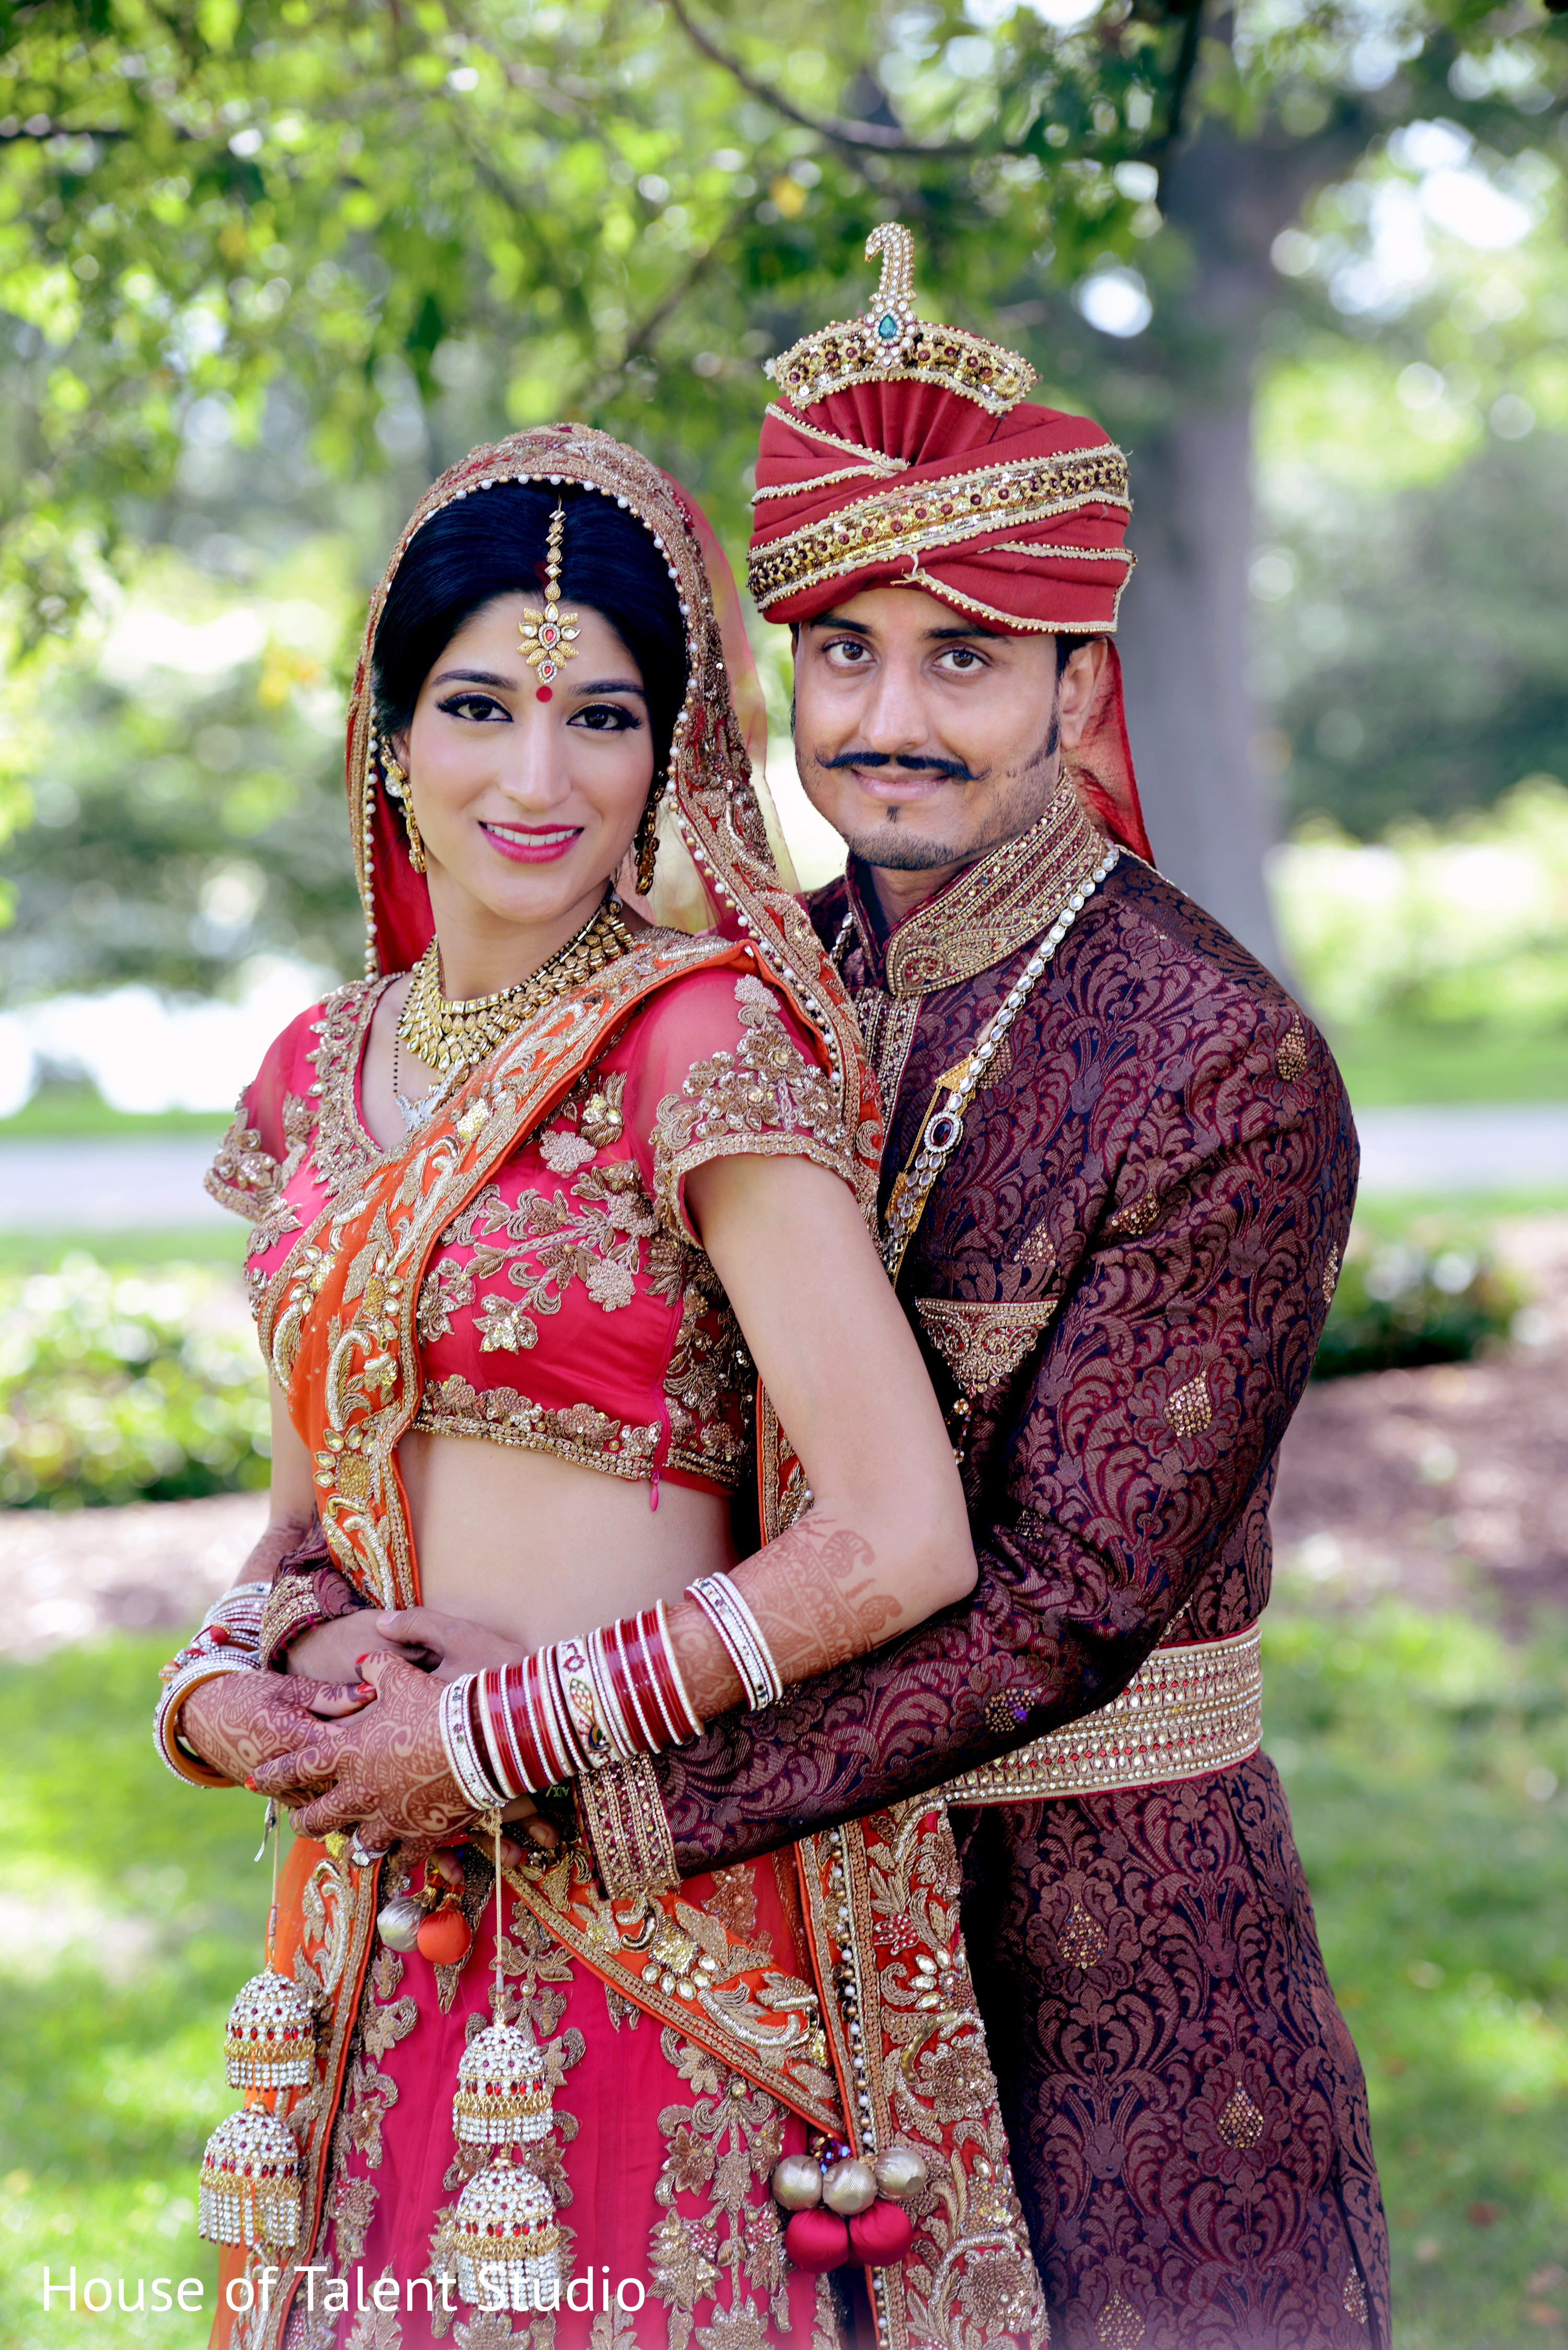 Portraits in long island ny indian wedding by house of talent portraits in long island ny indian wedding by house of talent studio maharani weddings junglespirit Image collections